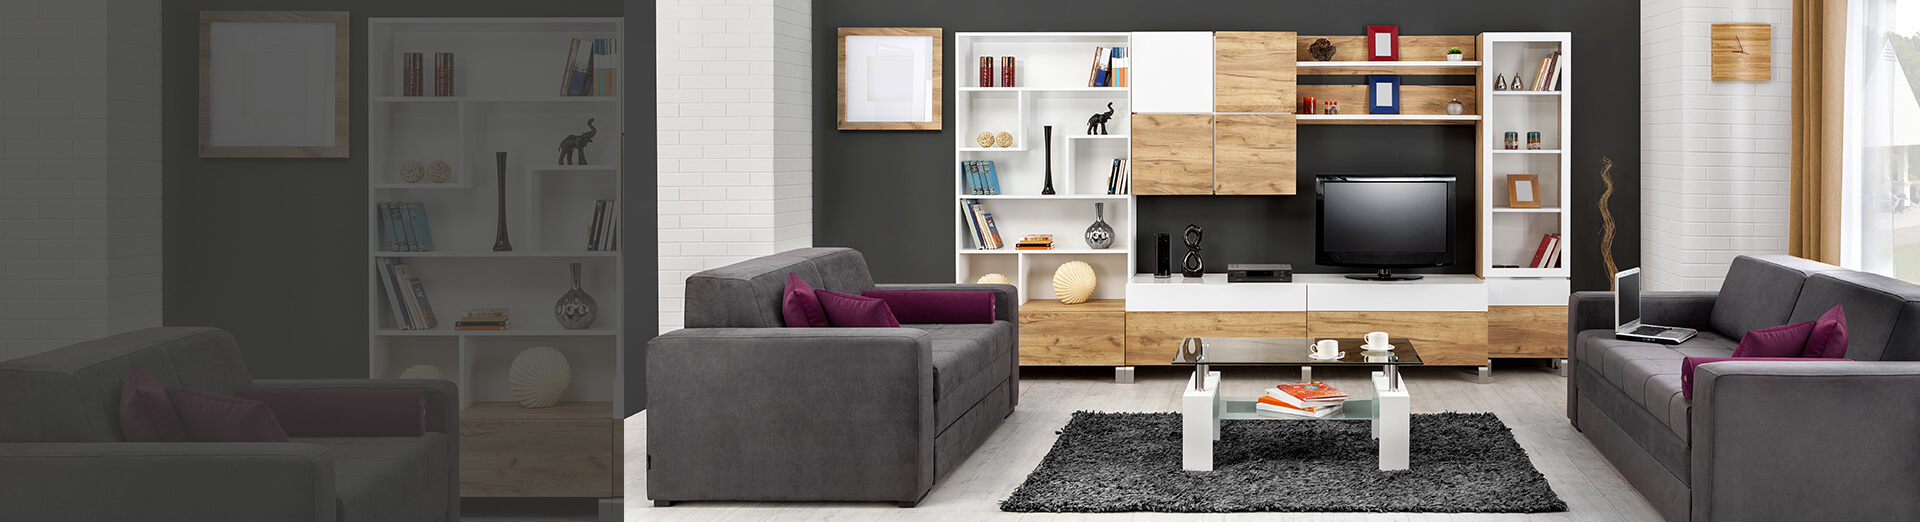 interior-furniture-home-slider